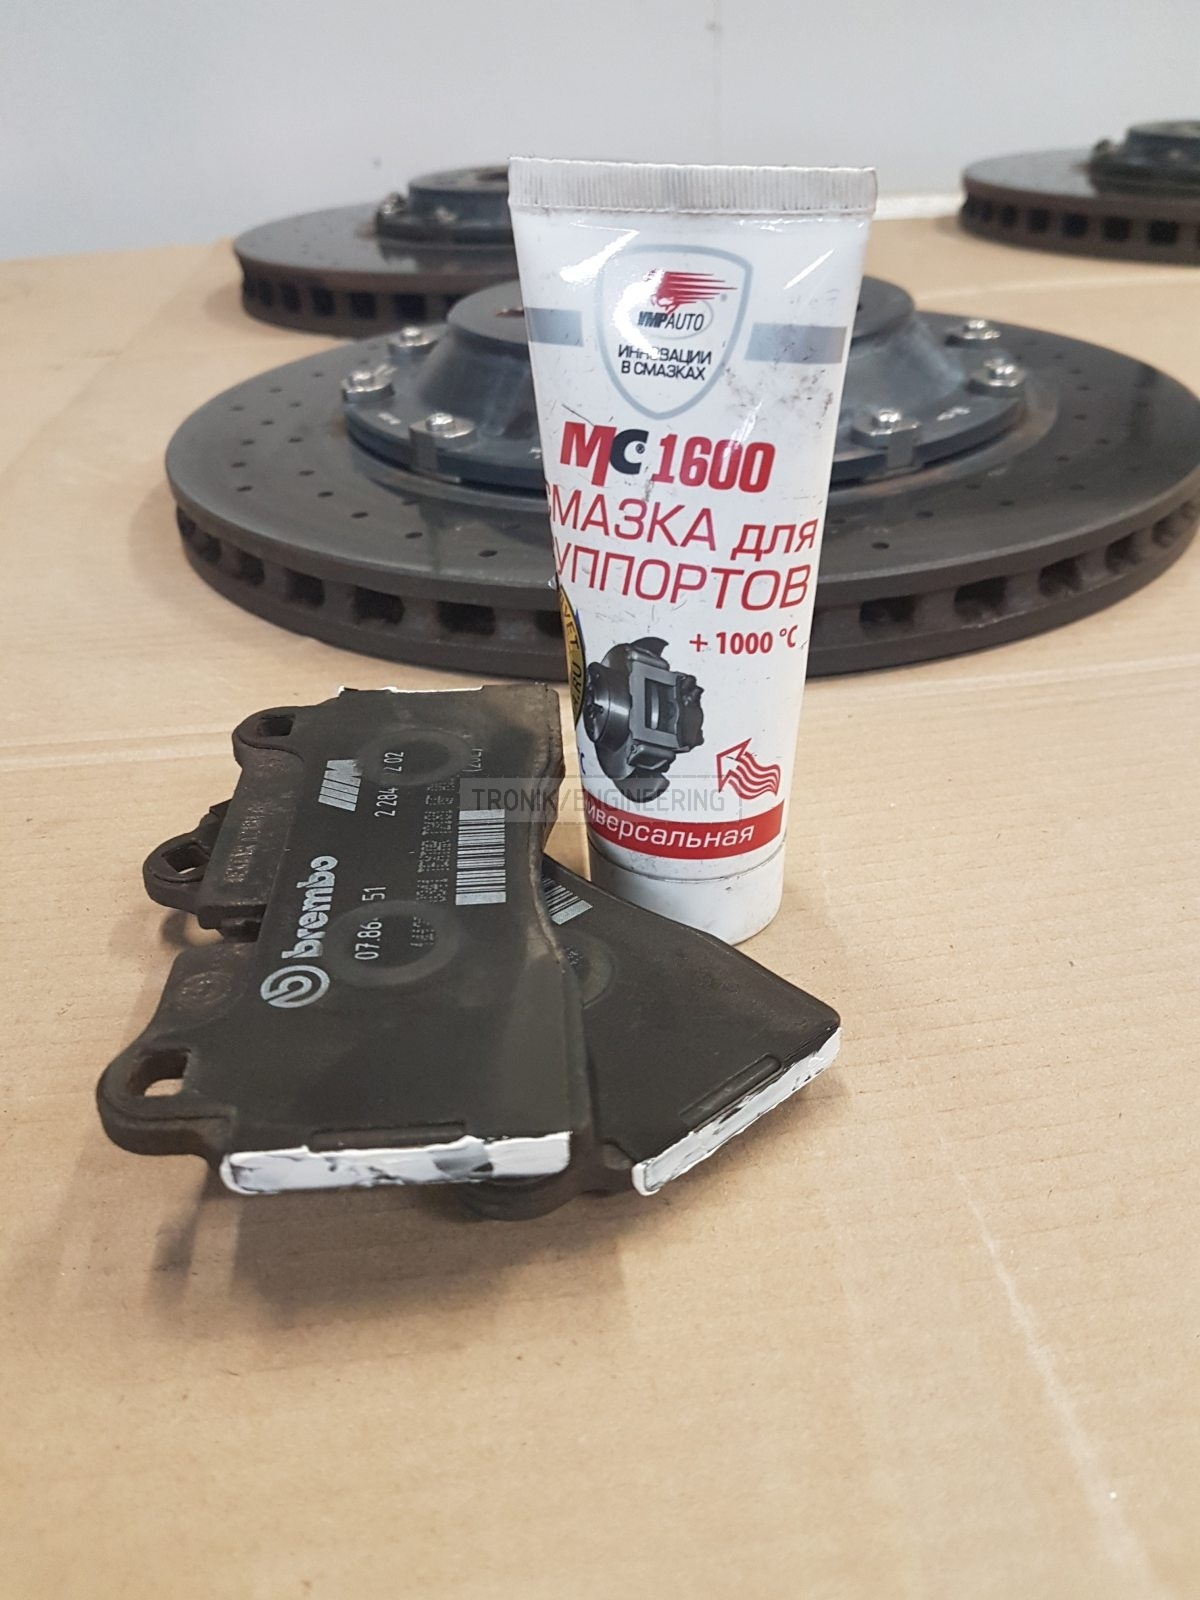 Covering brake pads' with high temperature lubricant